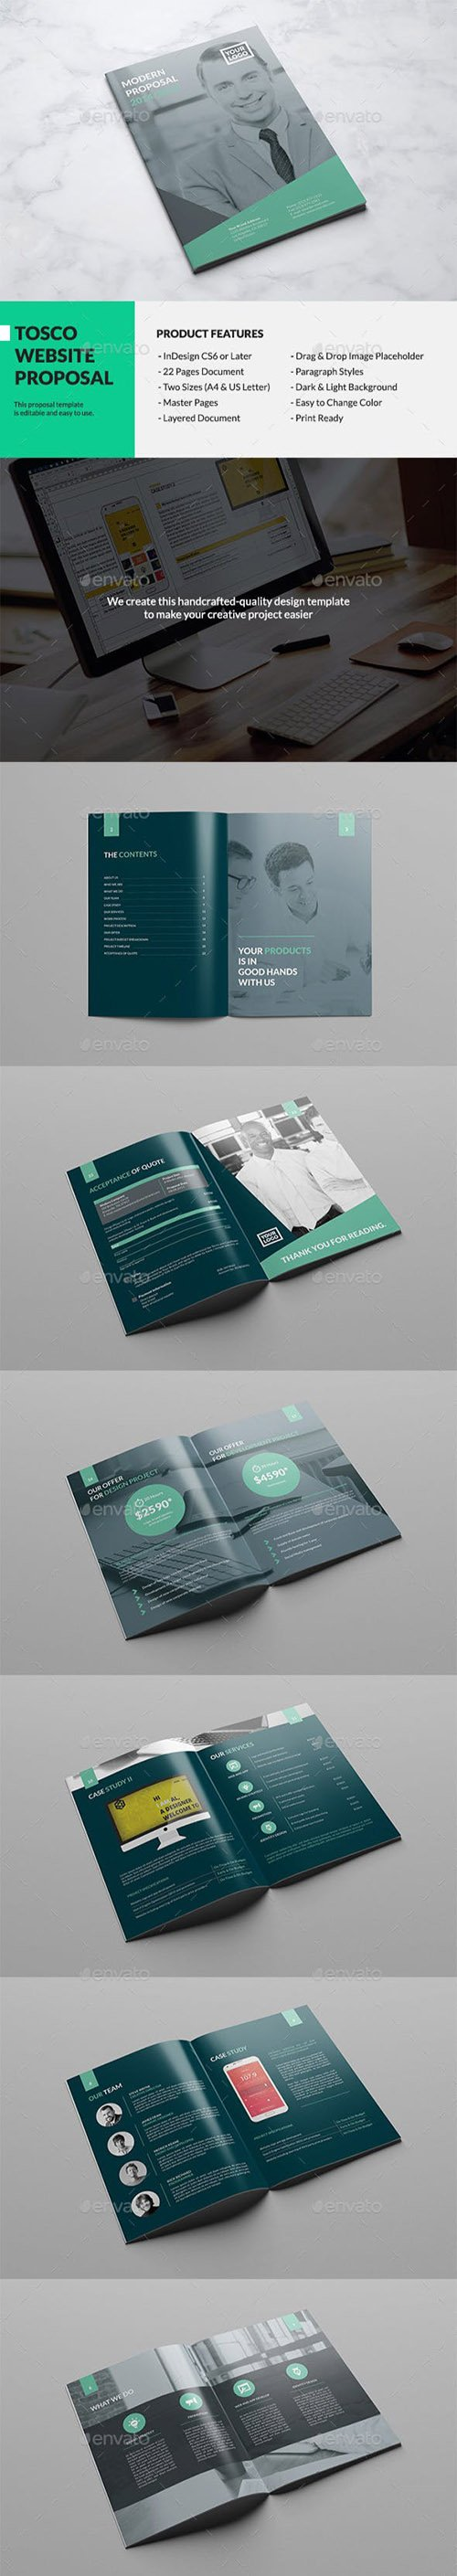 GR - Tosco - Modern Website Proposal 12984210